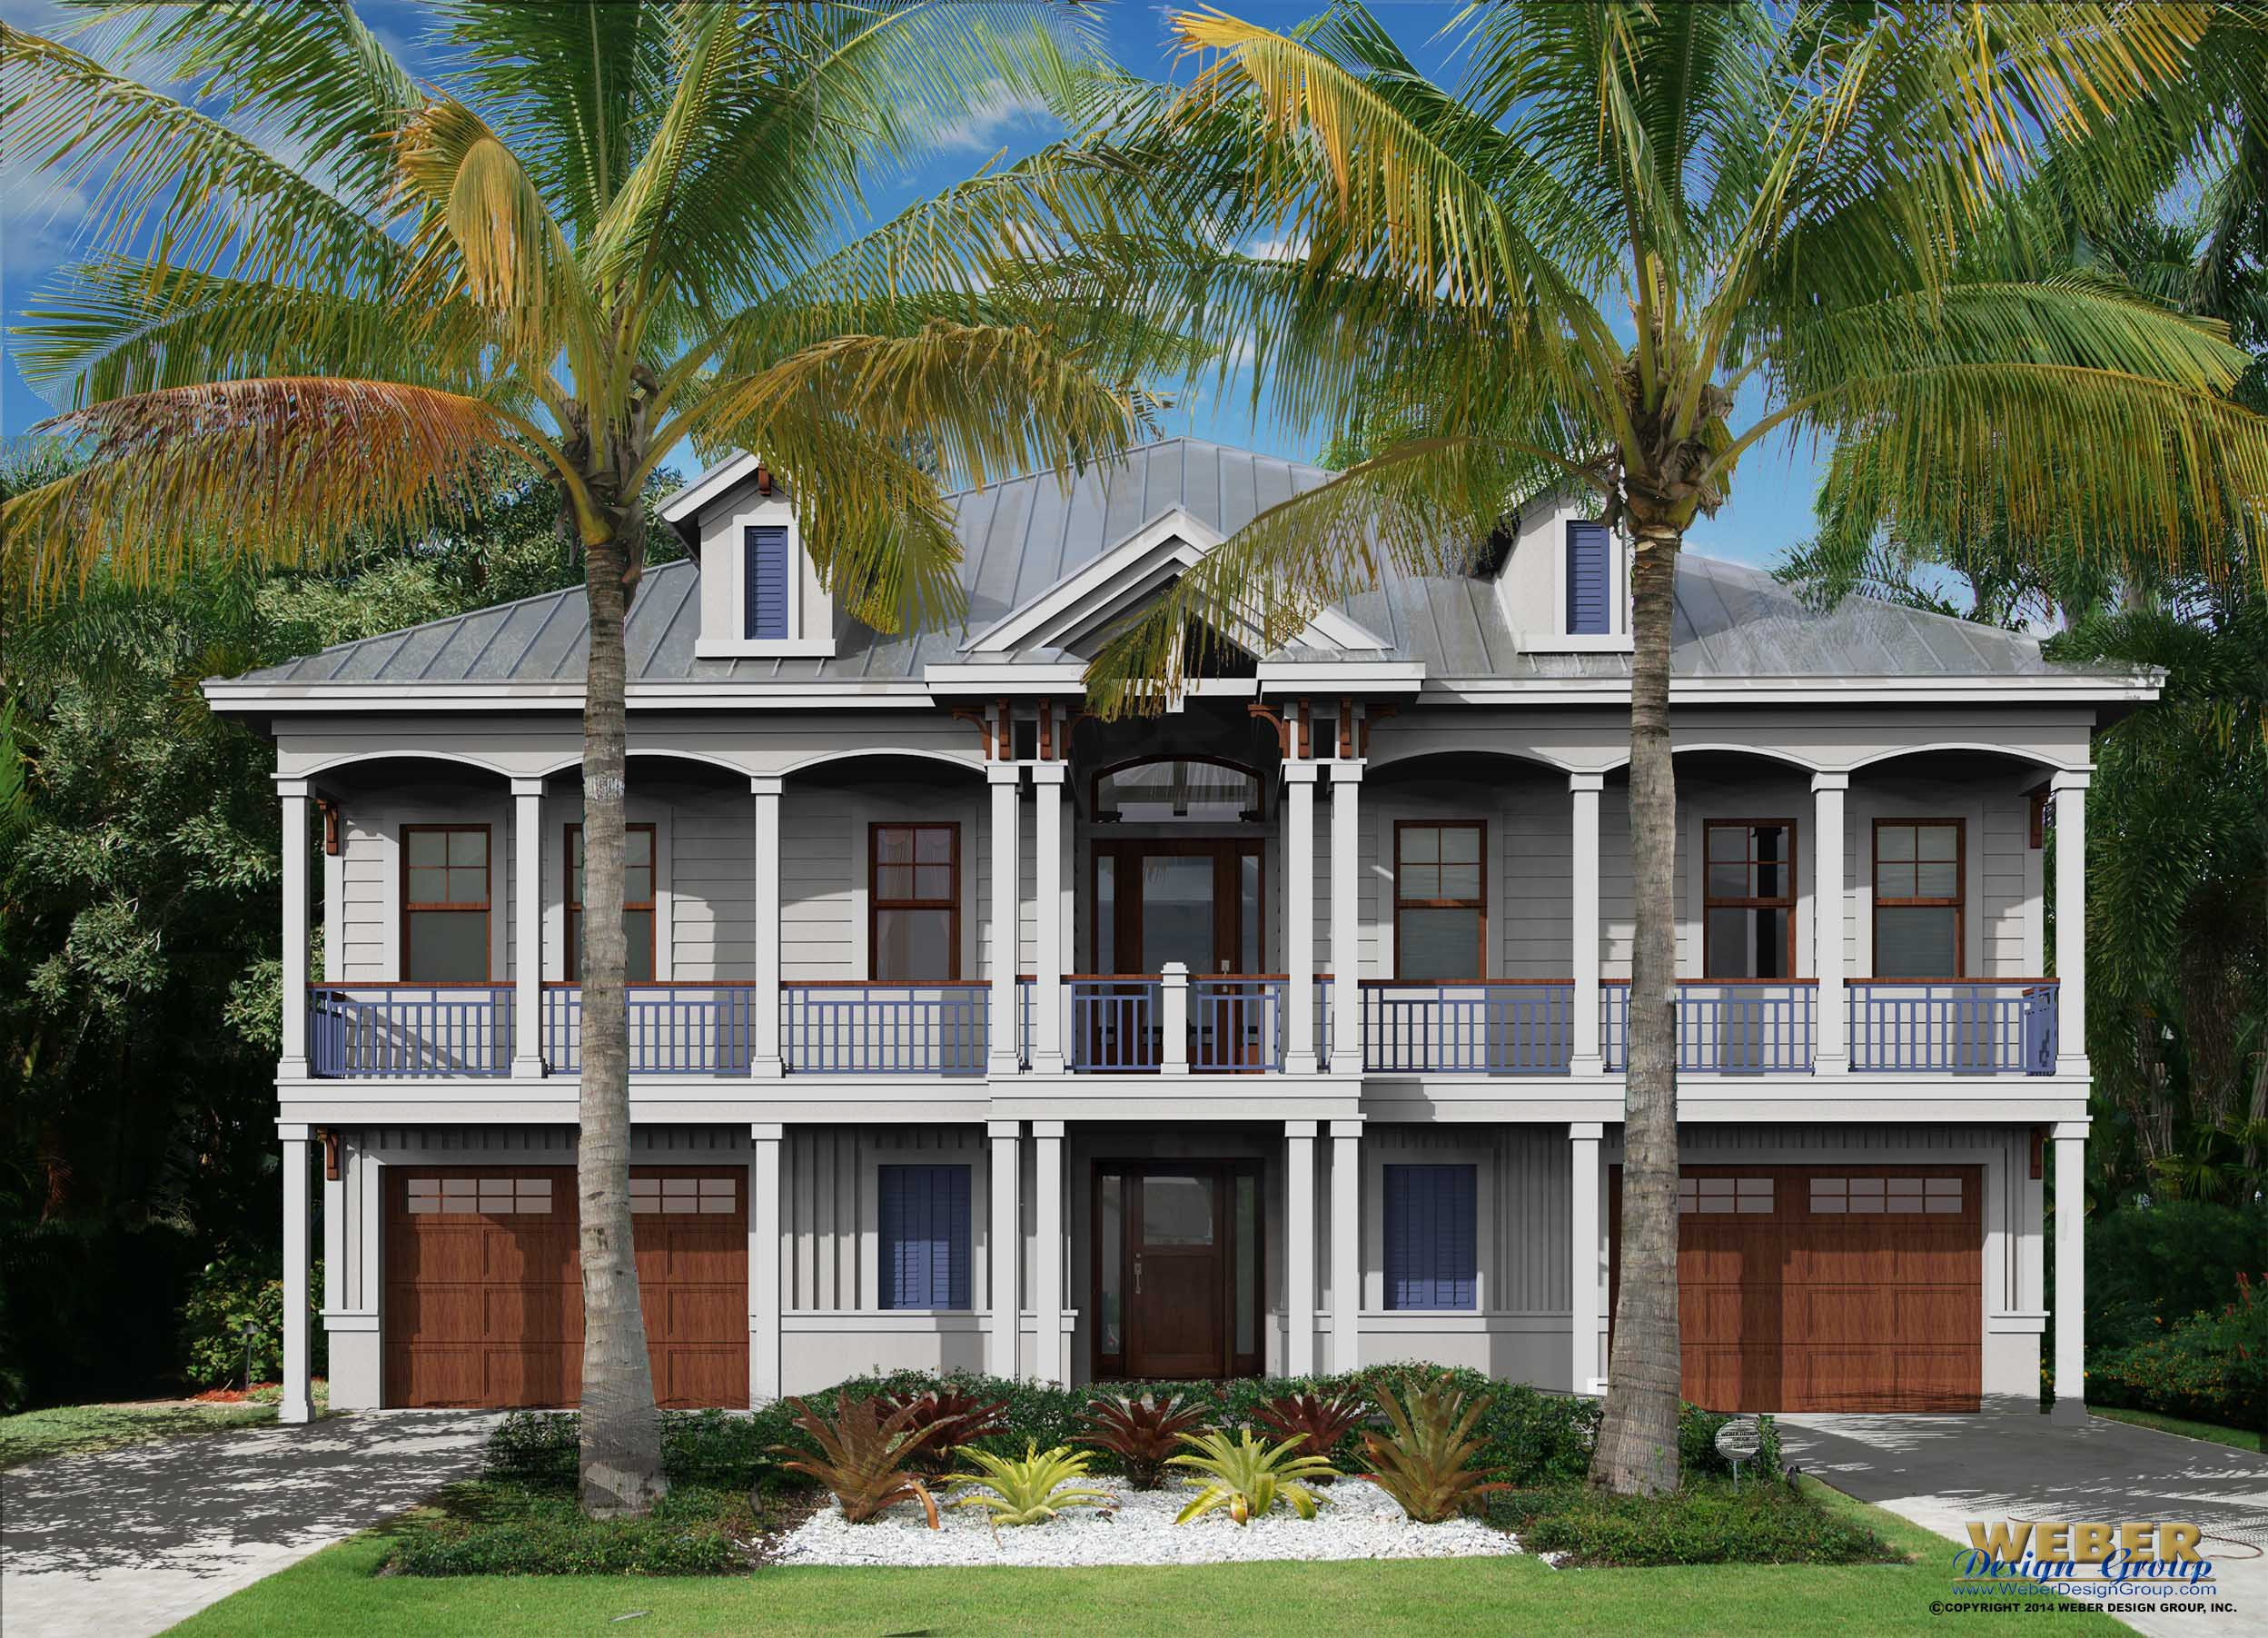 waterfront house plans modern house waterfront house plans from beach cottages to mansions